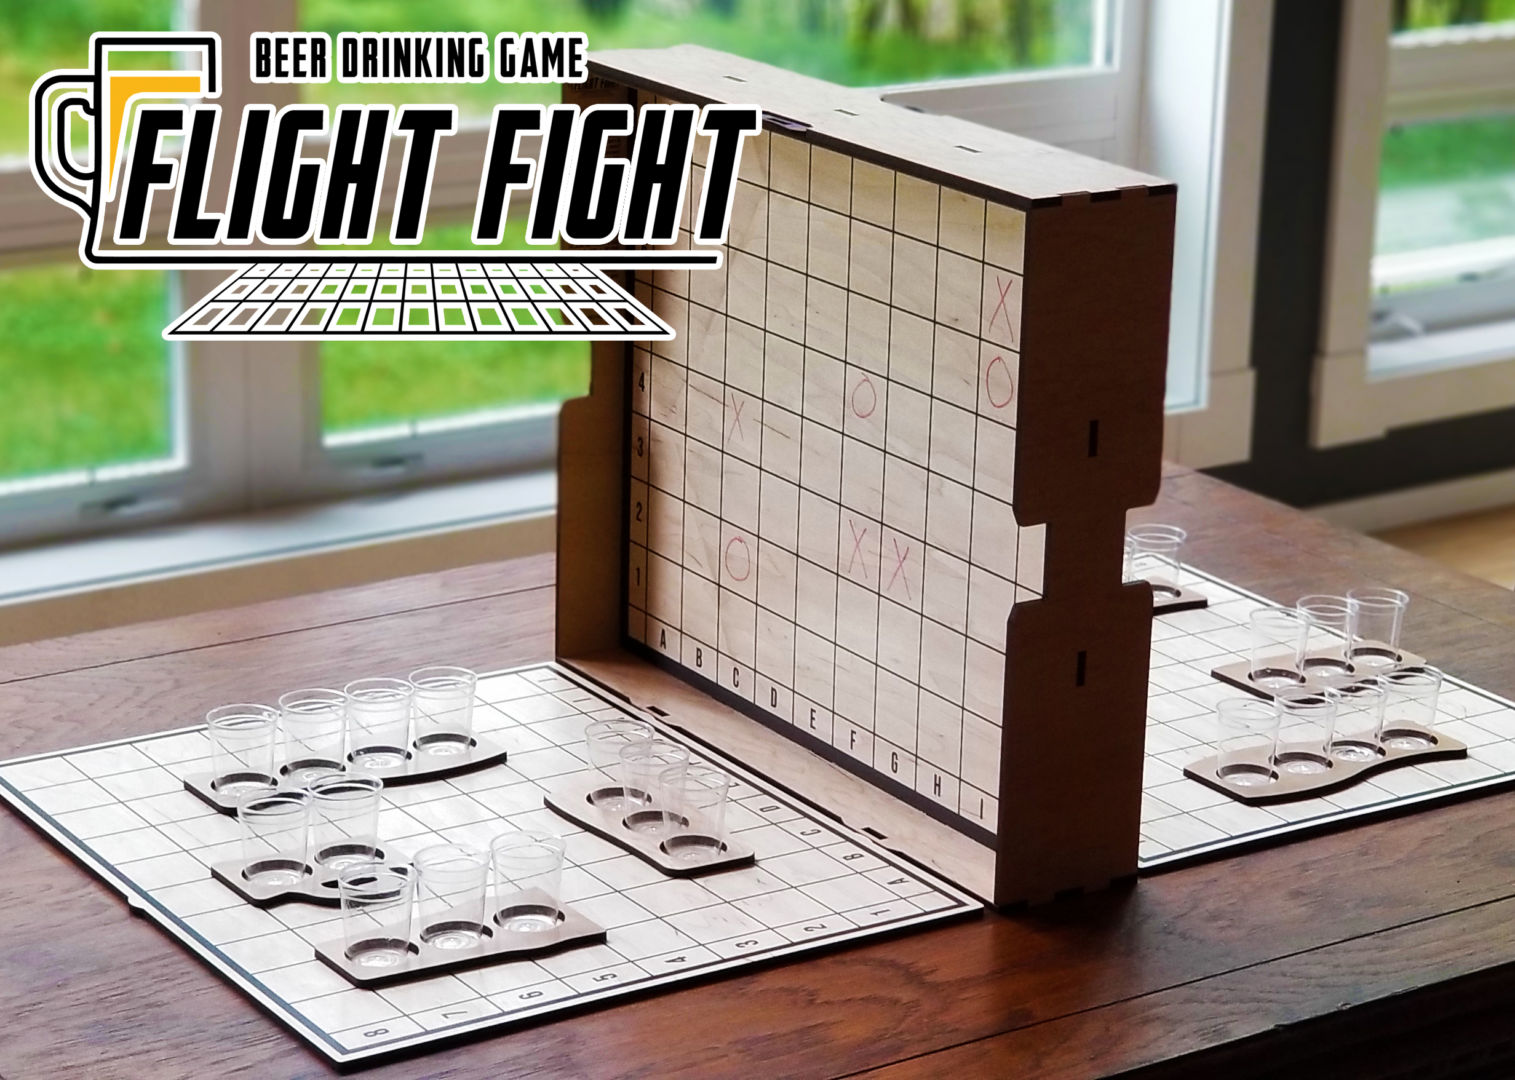 Flight Fight - The Ultimate Beer Drinking Party Game!